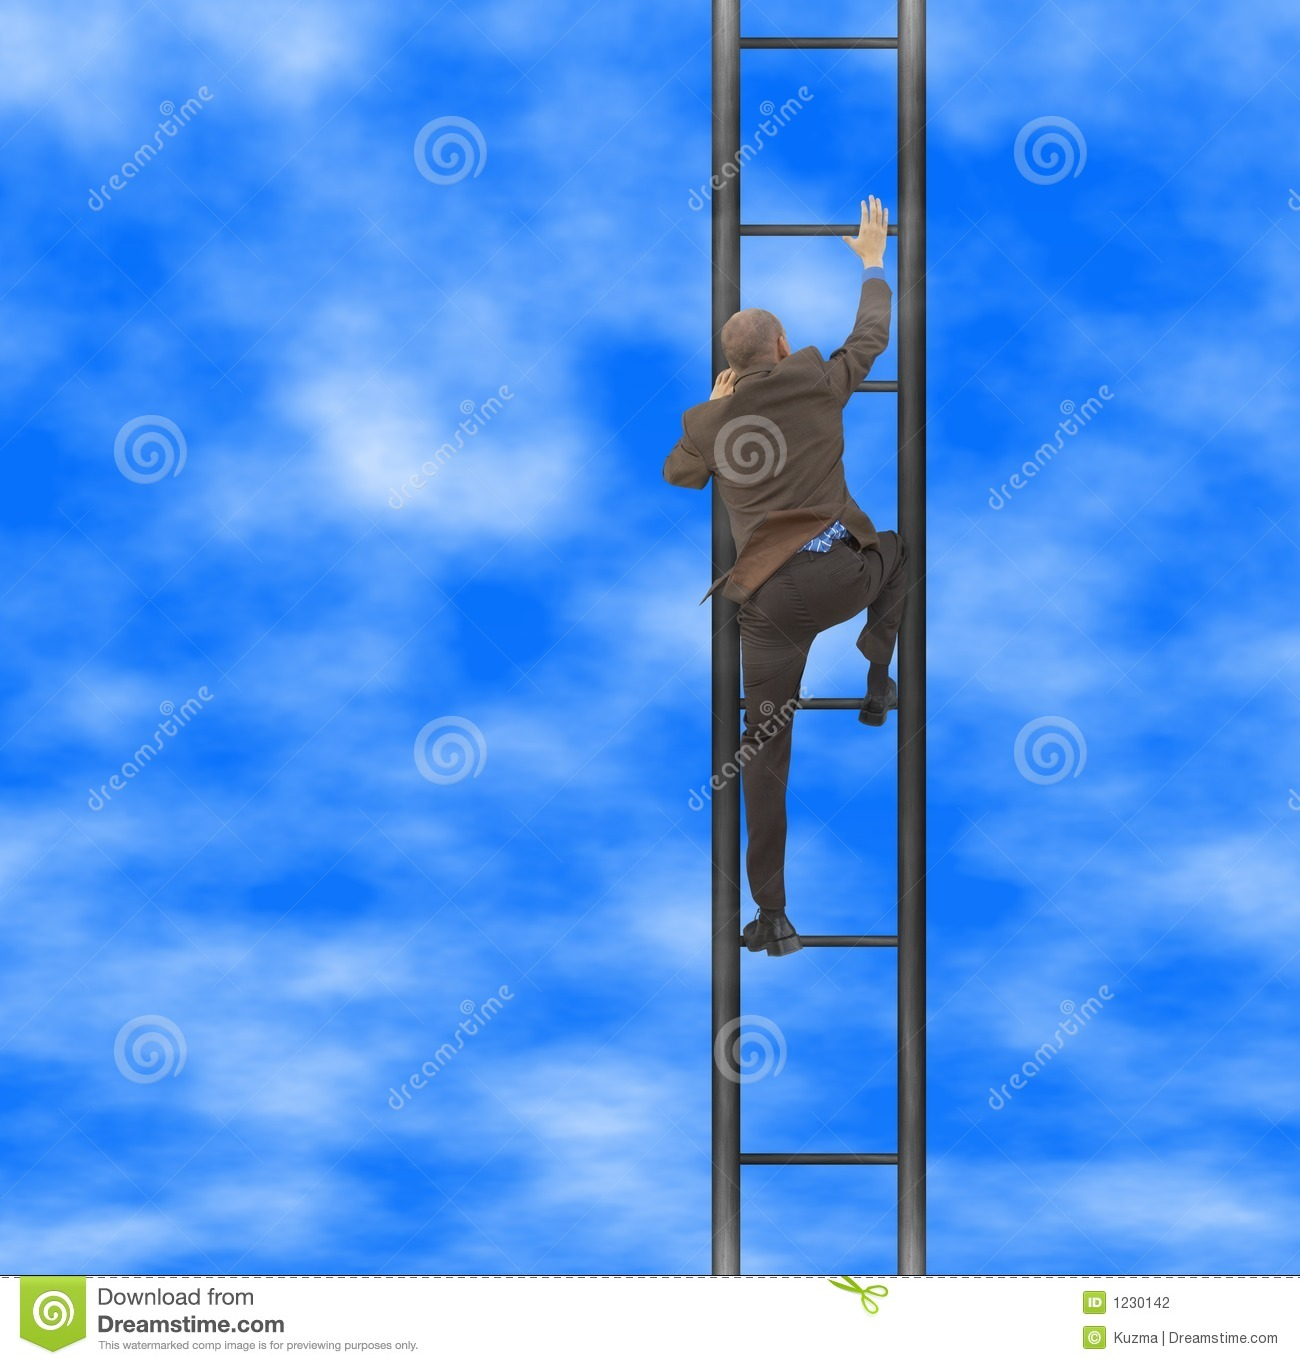 Way To The Top Stock Photo. Image Of Symbolical, Numerical